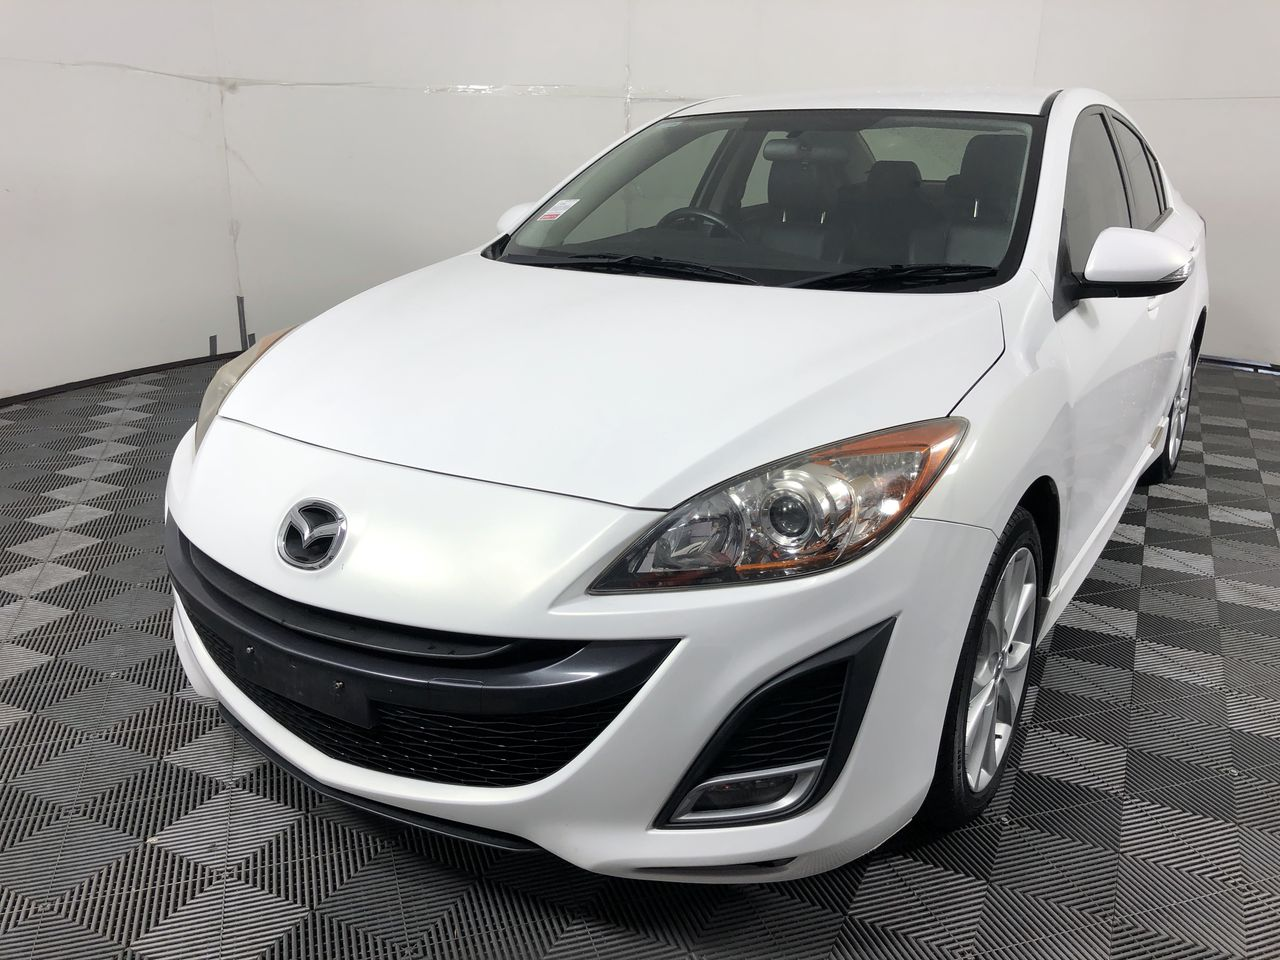 2011 Mazda 3 SP25 Luxury Sedan 90,184km